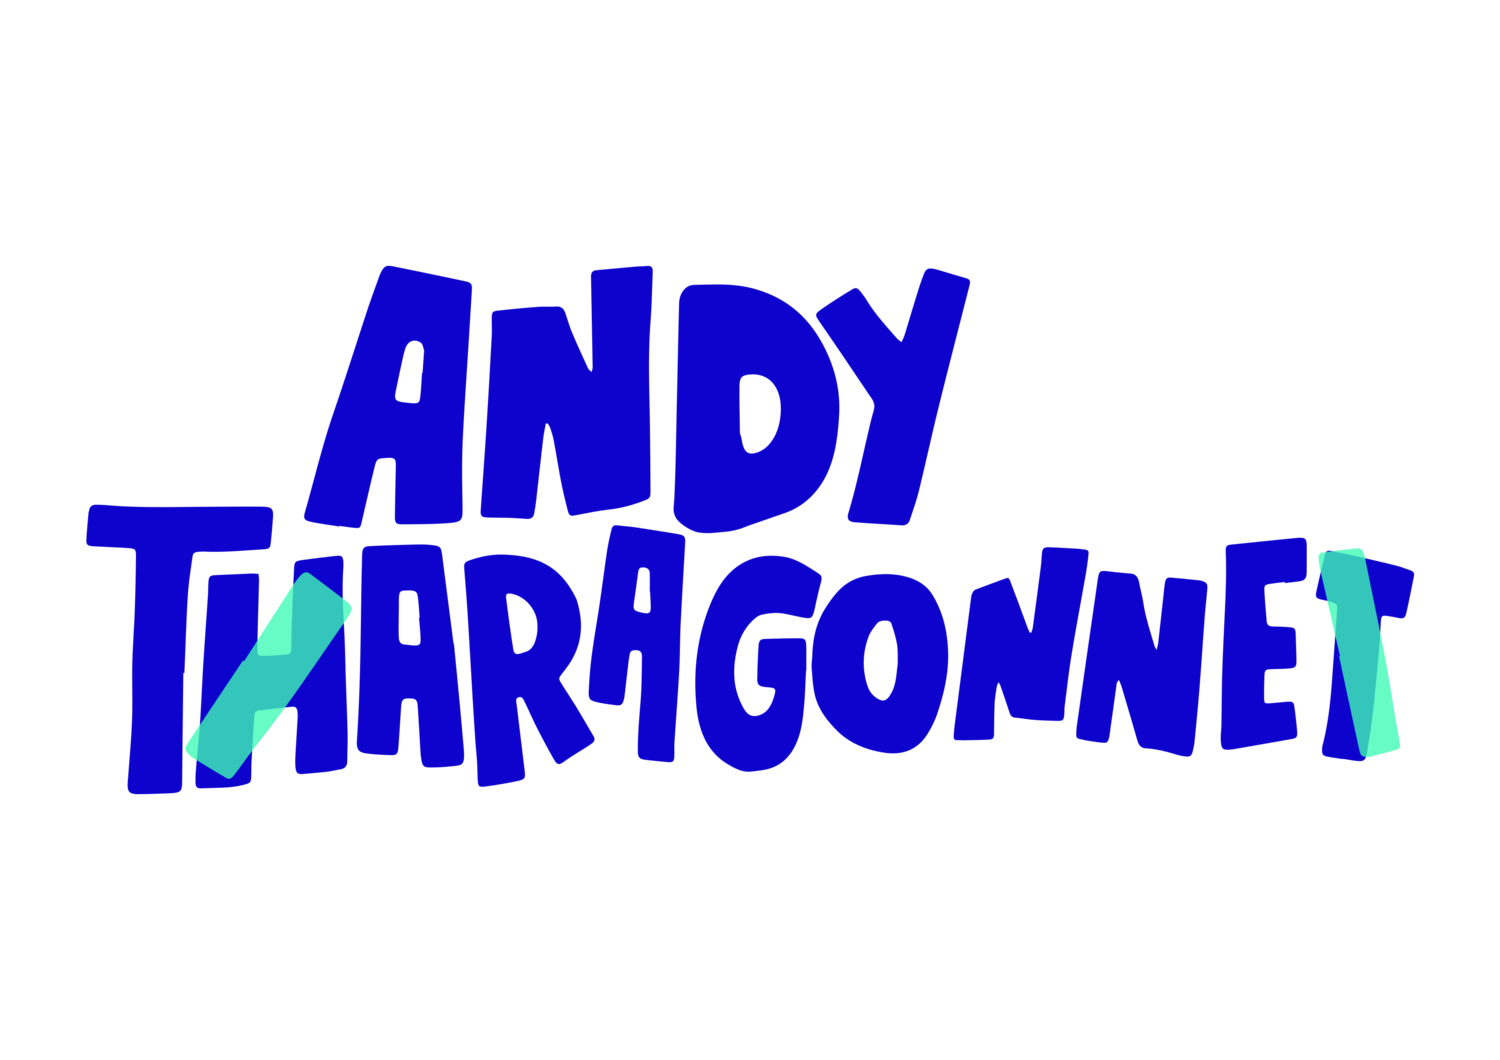 Andy Tharagonnet